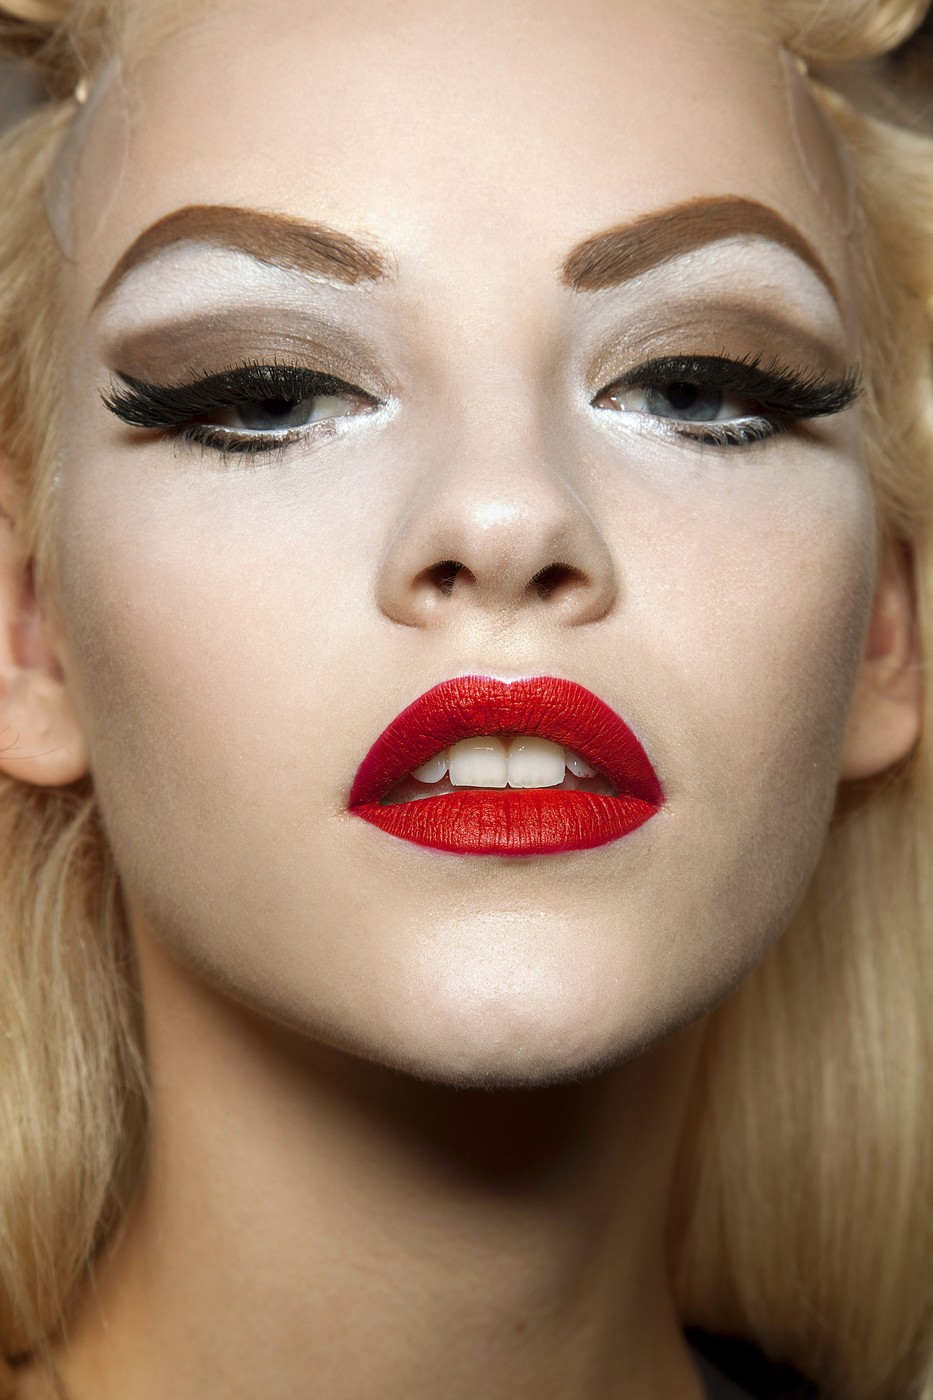 Only Follow Eyebrow Trends That Work For You